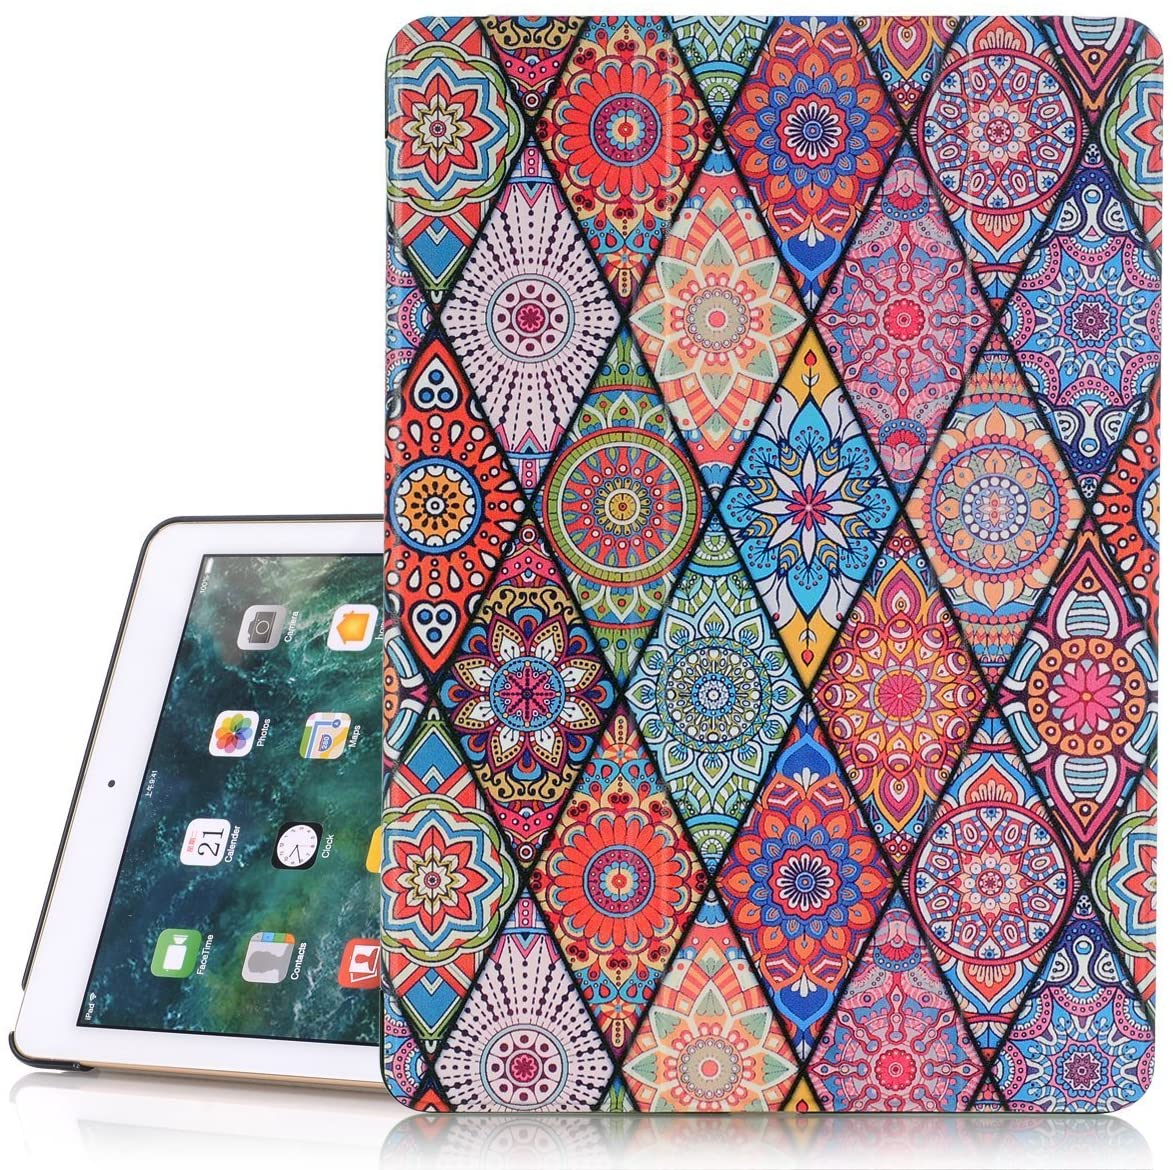 iPad 6th/5th Generation Case, Hocase PU Leather Smart Case w/Cute Flower Design, Auto Sleep Wake Feature, Microfiber Lining Hard Back Cover for iPad A1893/A1954/A1822/A1823 - Mandala